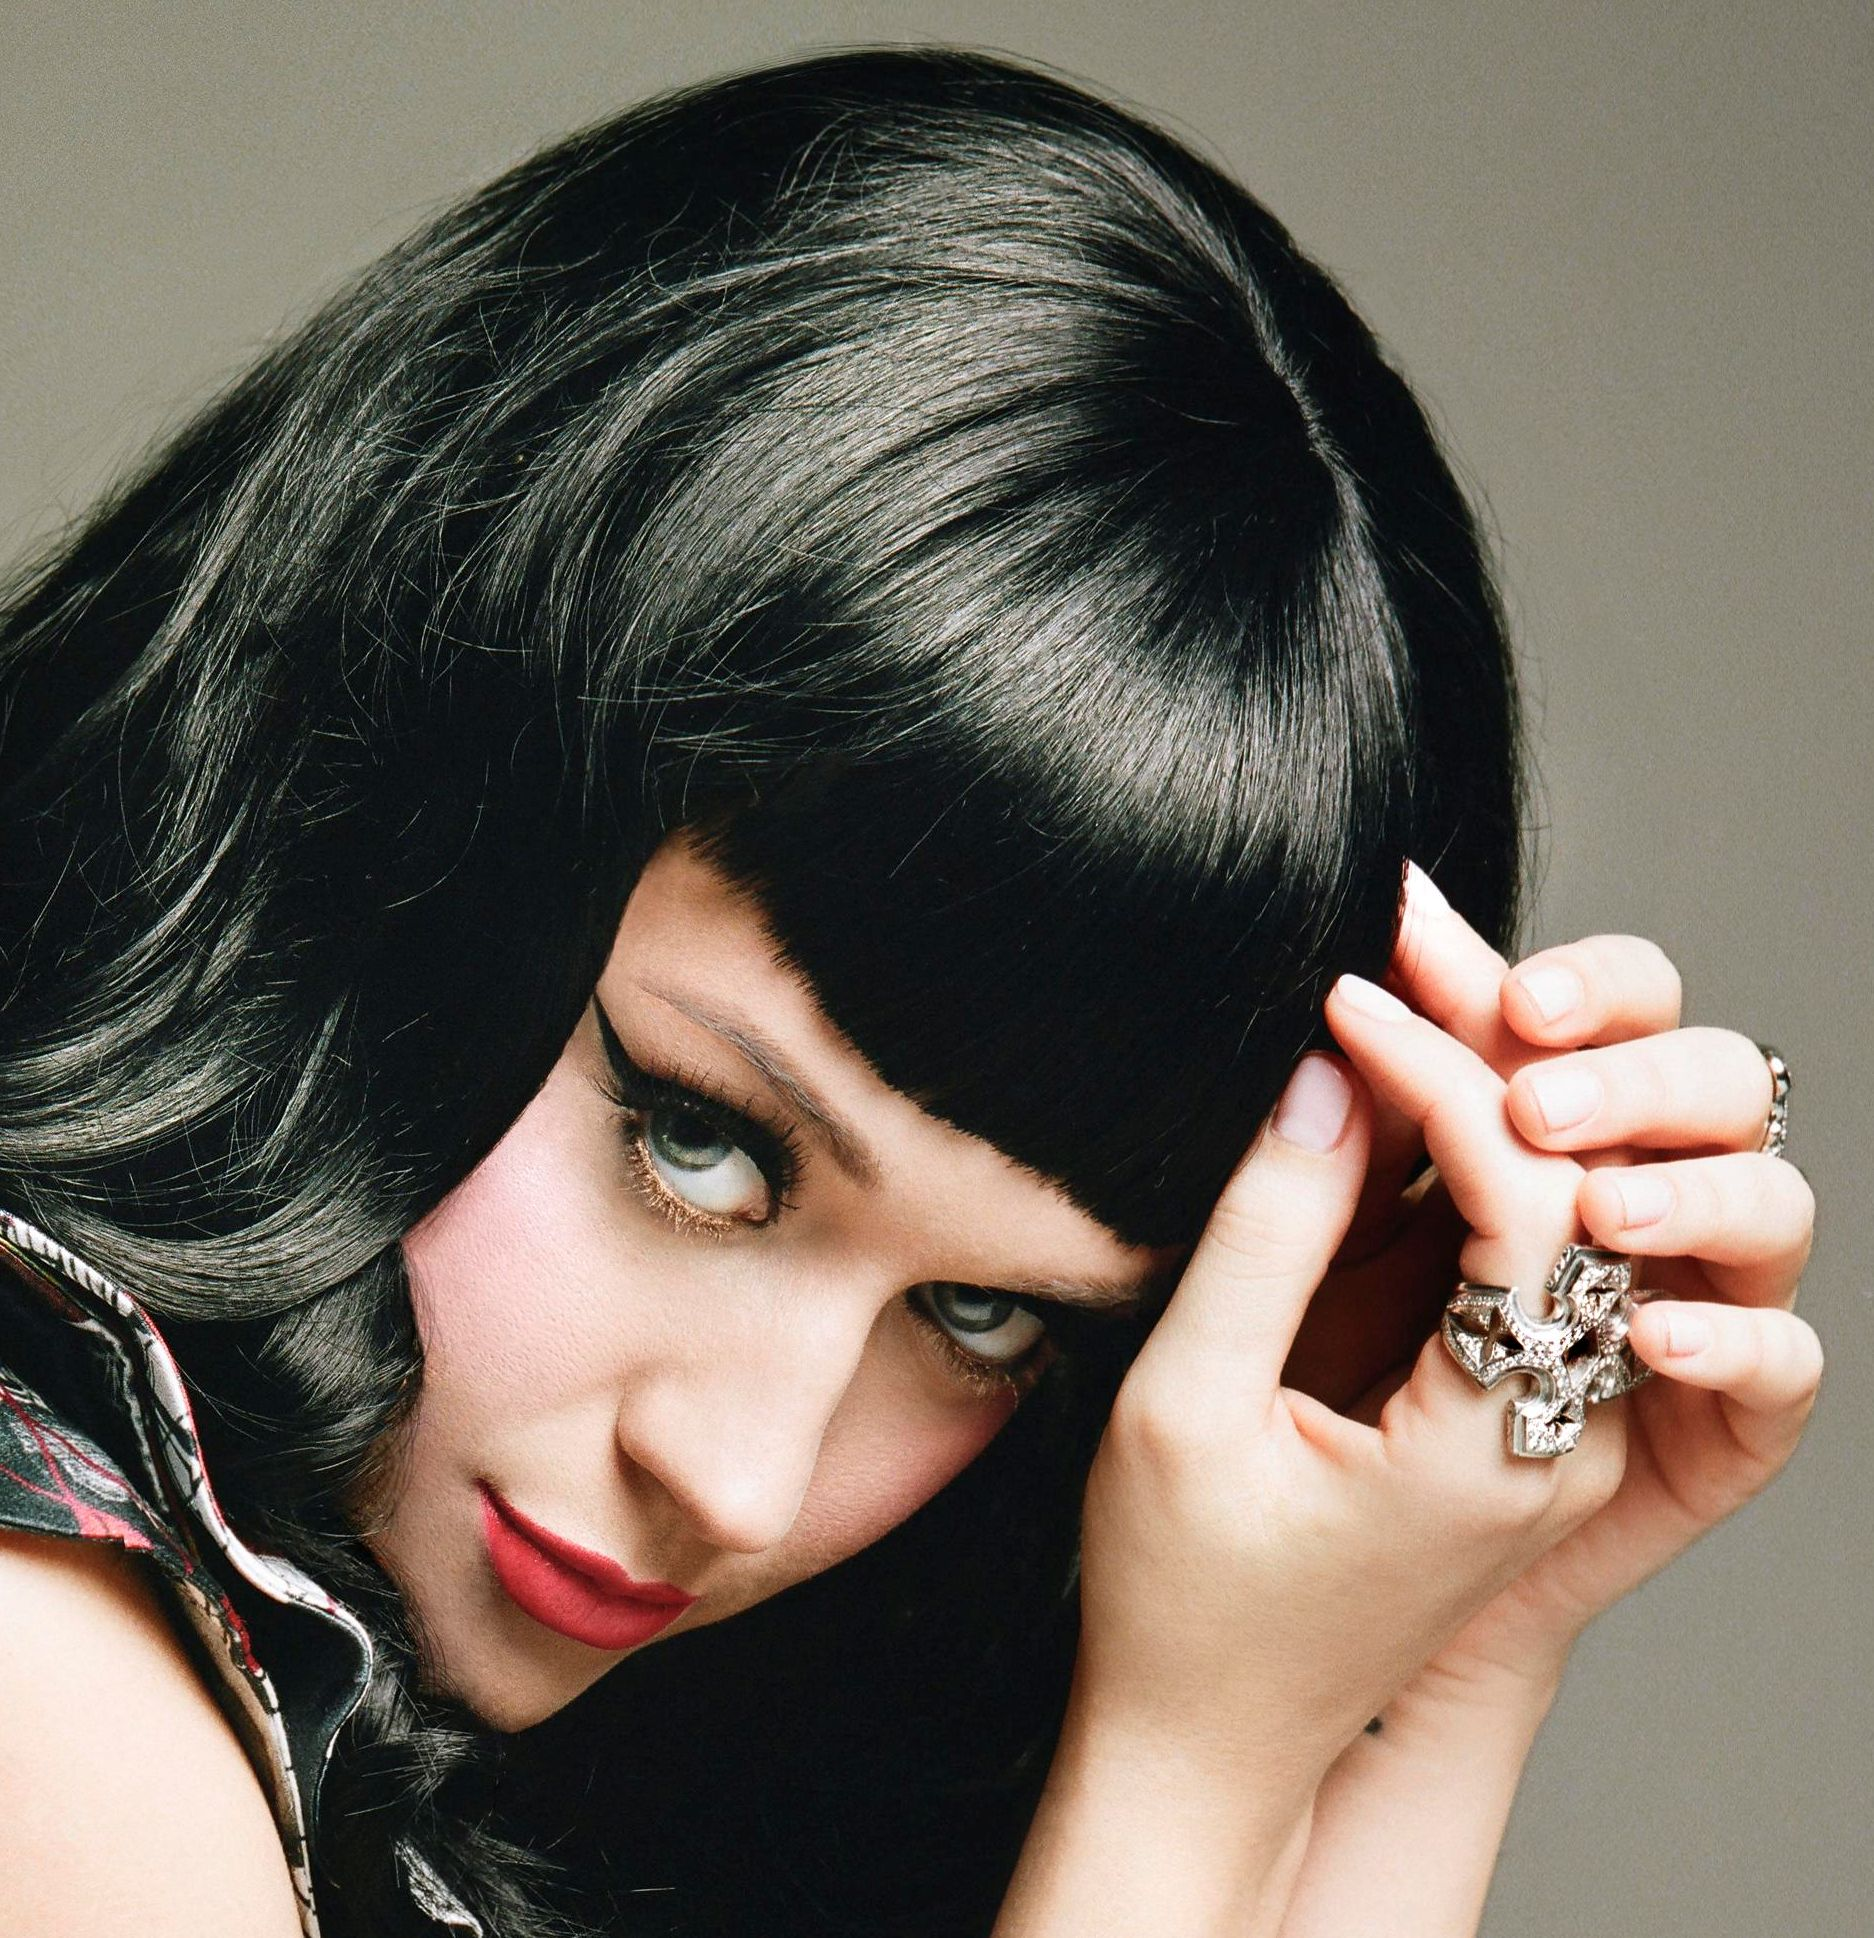 The 2012 MUCHMUSIC VIDEO AWARDS Realize Teenage Dreams as Global Pop Star Katy Perry is First Performer Announced